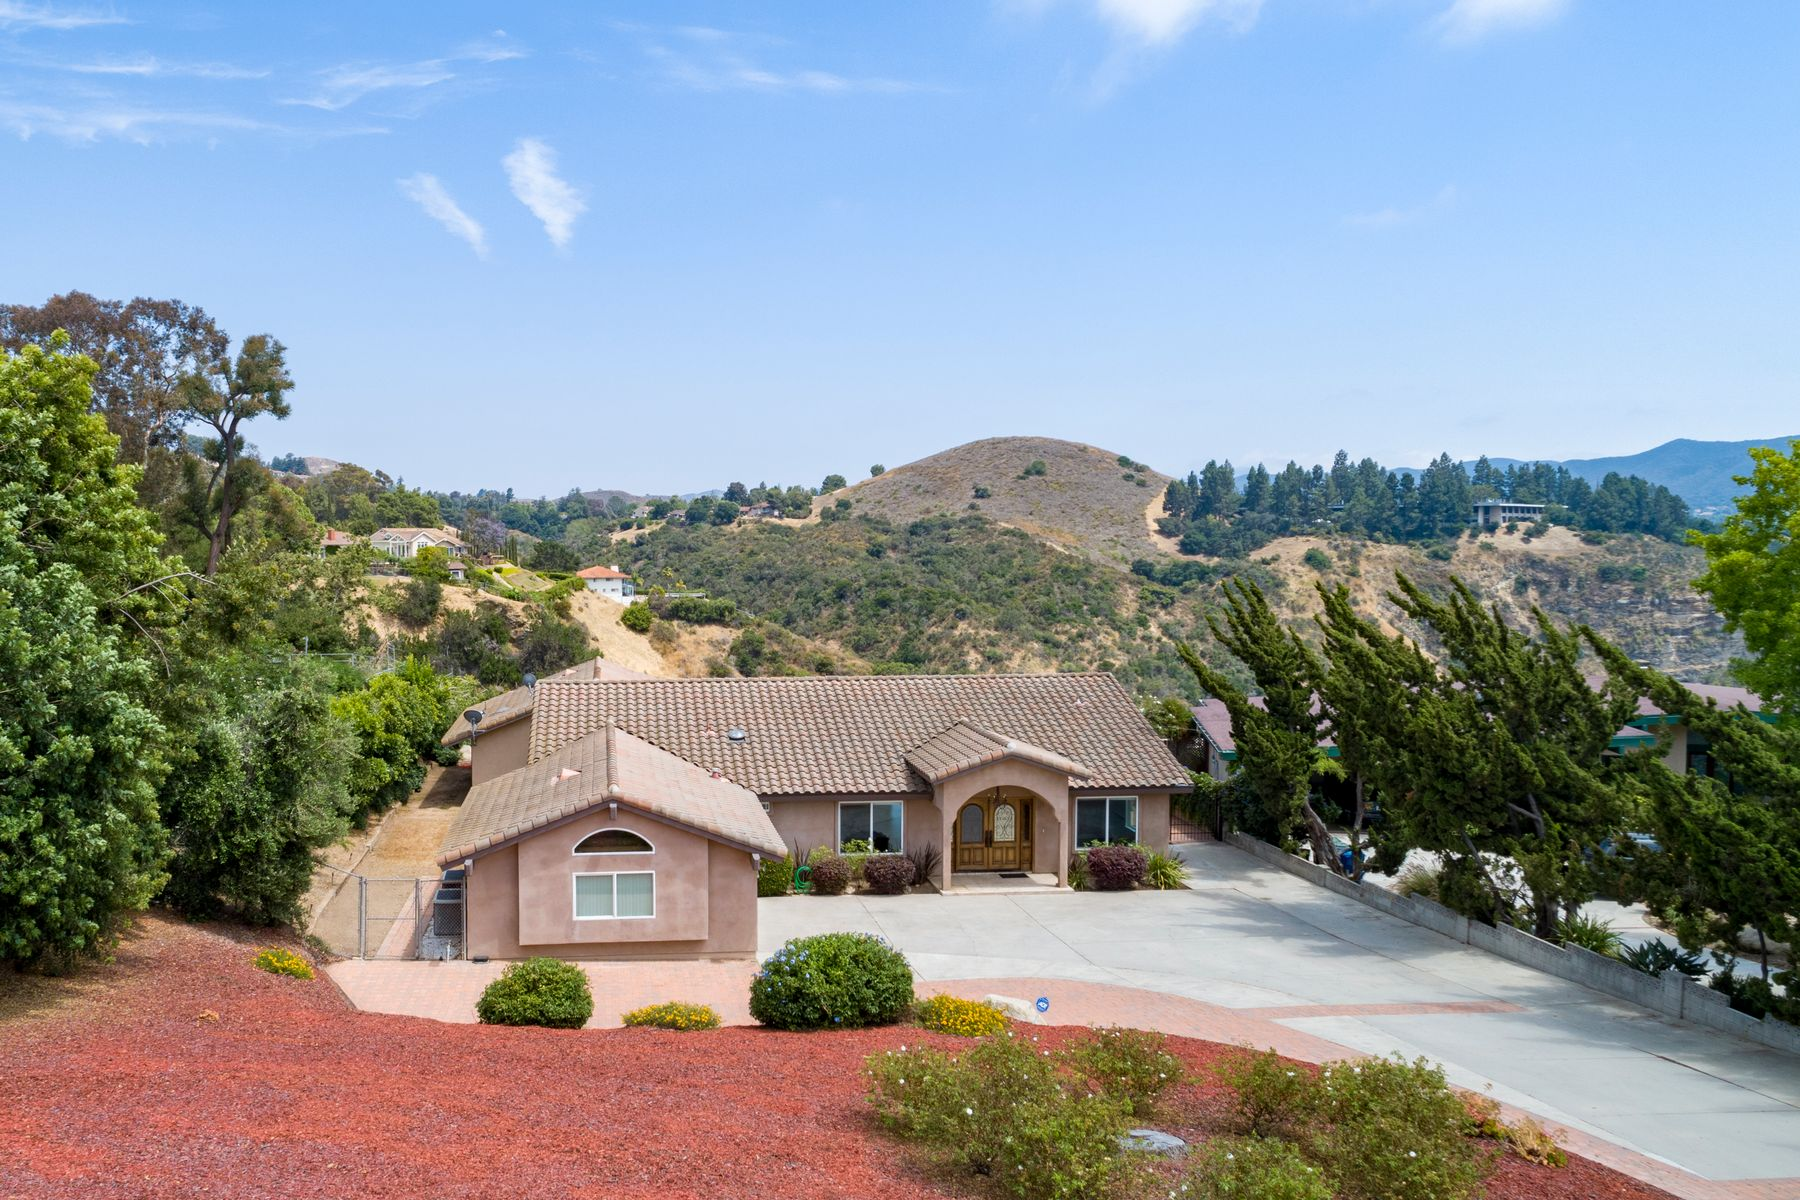 Single Family Homes for Sale at Upgraded Single Story View Home 1334 Camino Cristobal Thousand Oaks, California 91360 United States